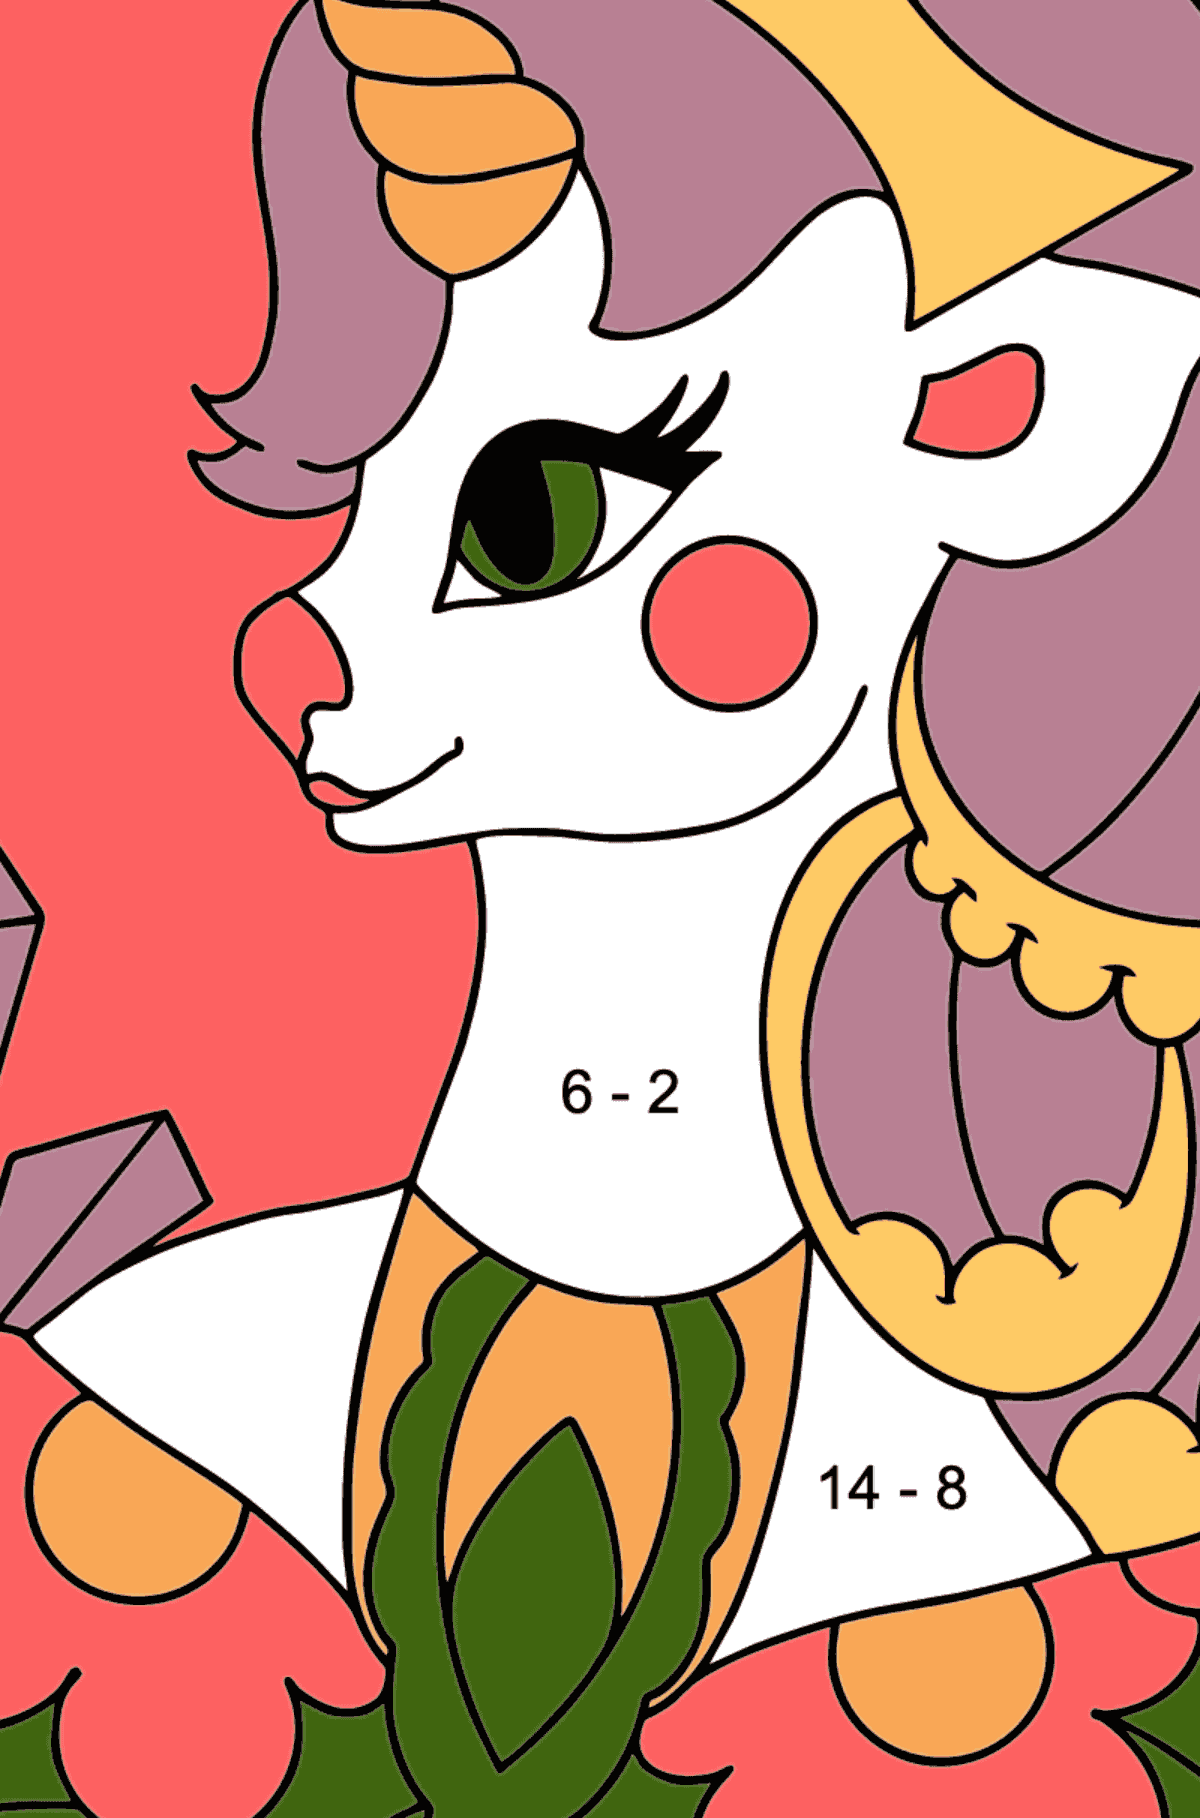 Simple Coloring Page - A Unicorn Queen for Kids  - Color by Number Substraction